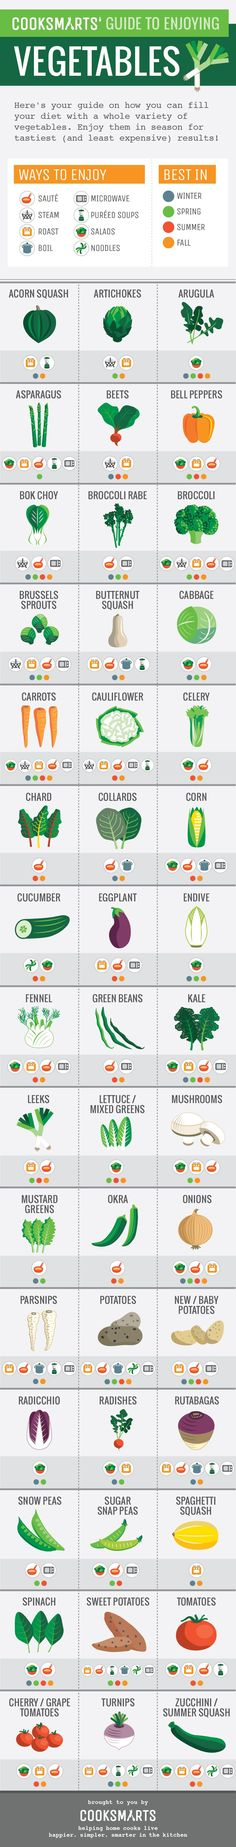 Cook Smarts' cooking formula guide to enjoying vegetables. #infographic